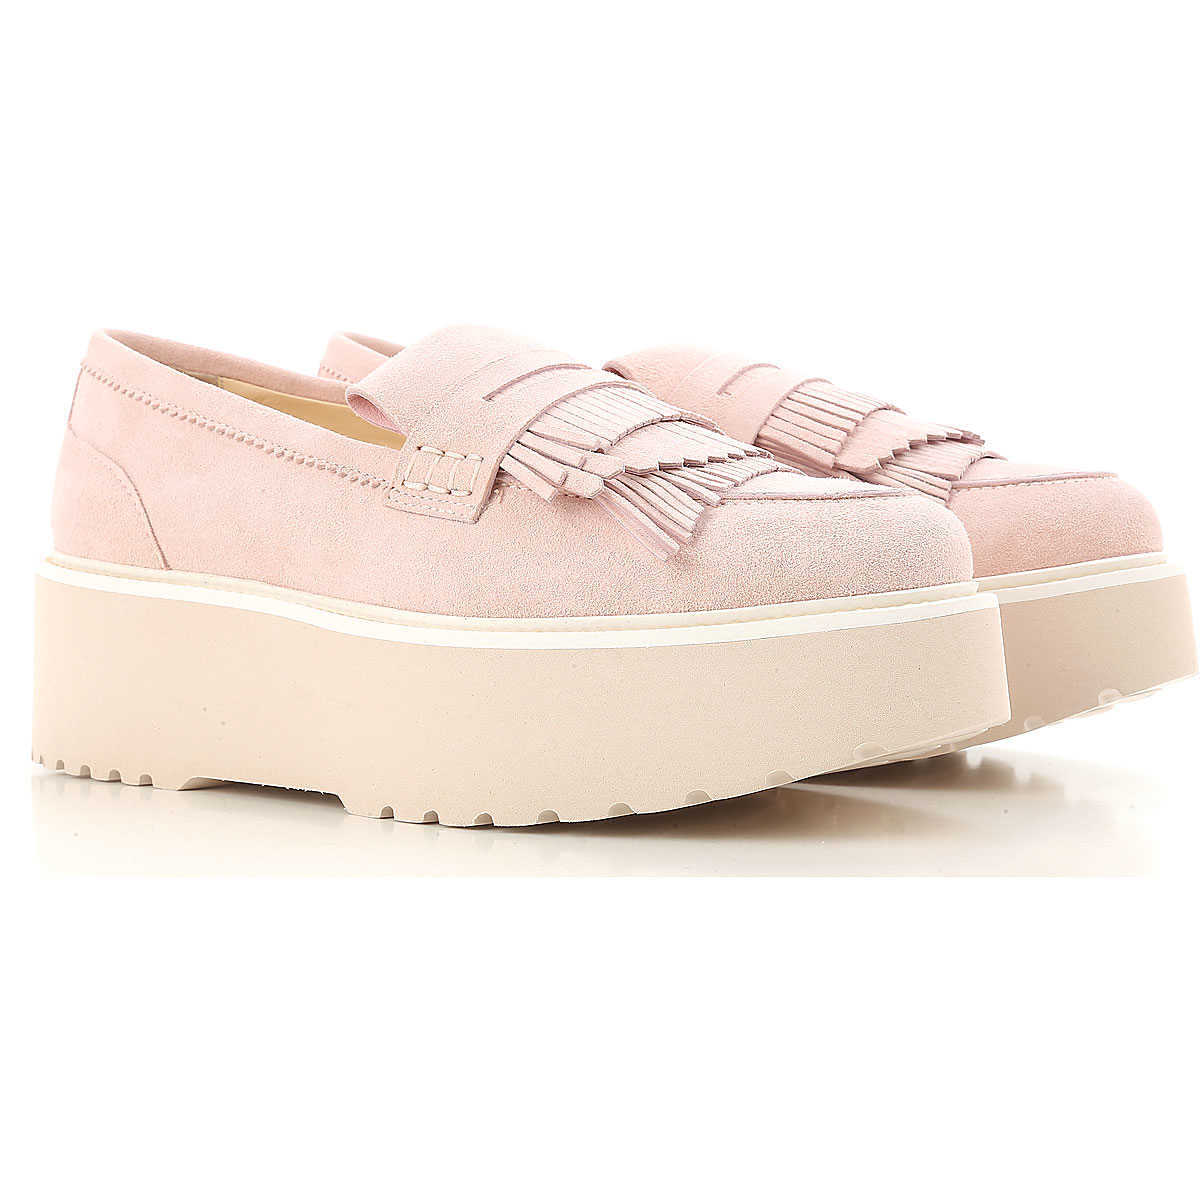 Hogan Loafers for Women Pink - GOOFASH